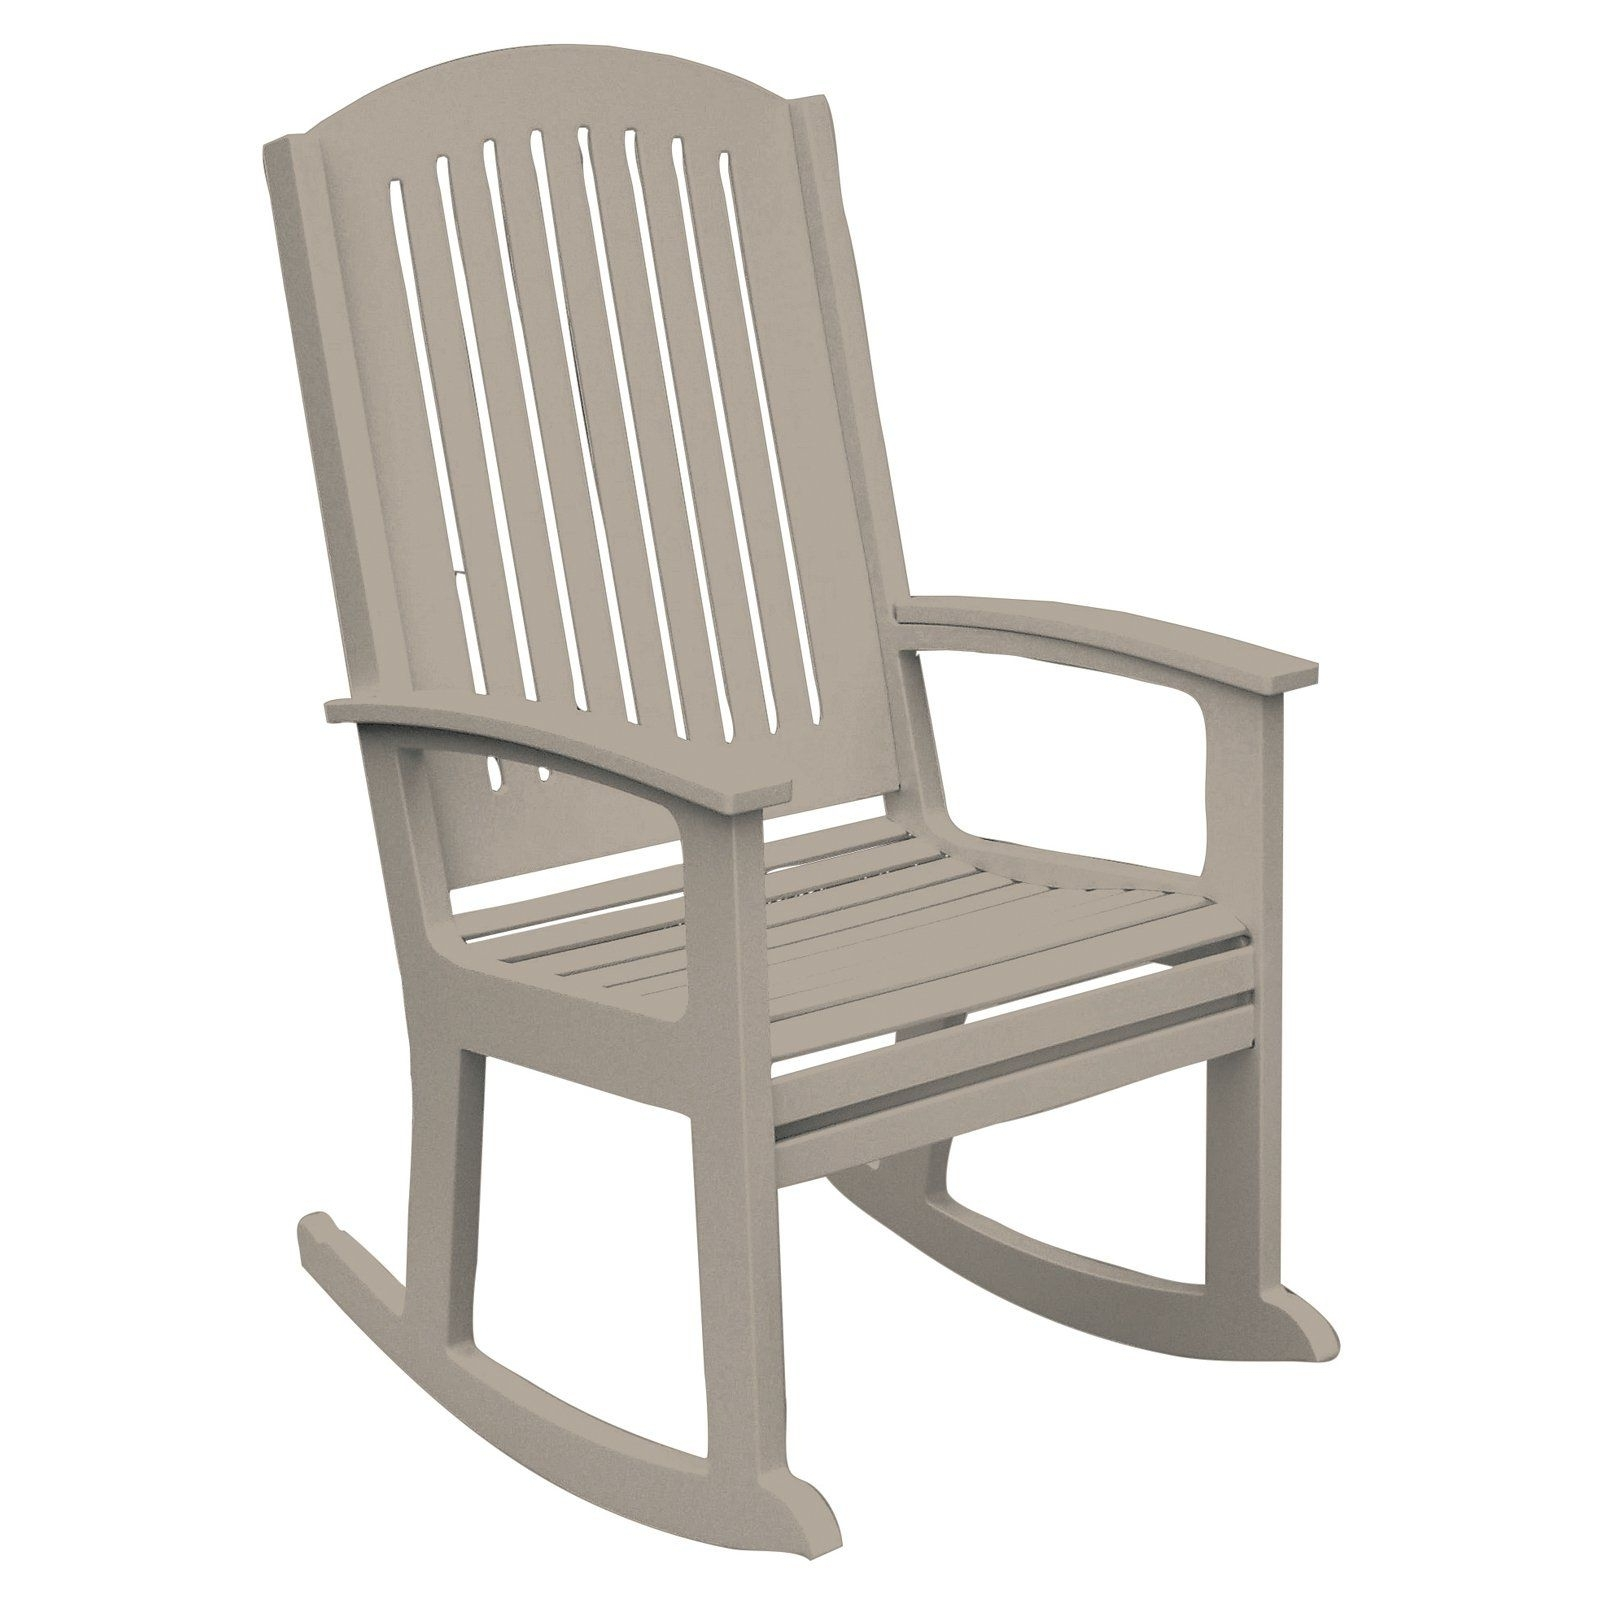 High Back Rocking Chairs Pertaining To Trendy Poly Concepts Outdoor Andureflex High Back Rocker (View 7 of 15)